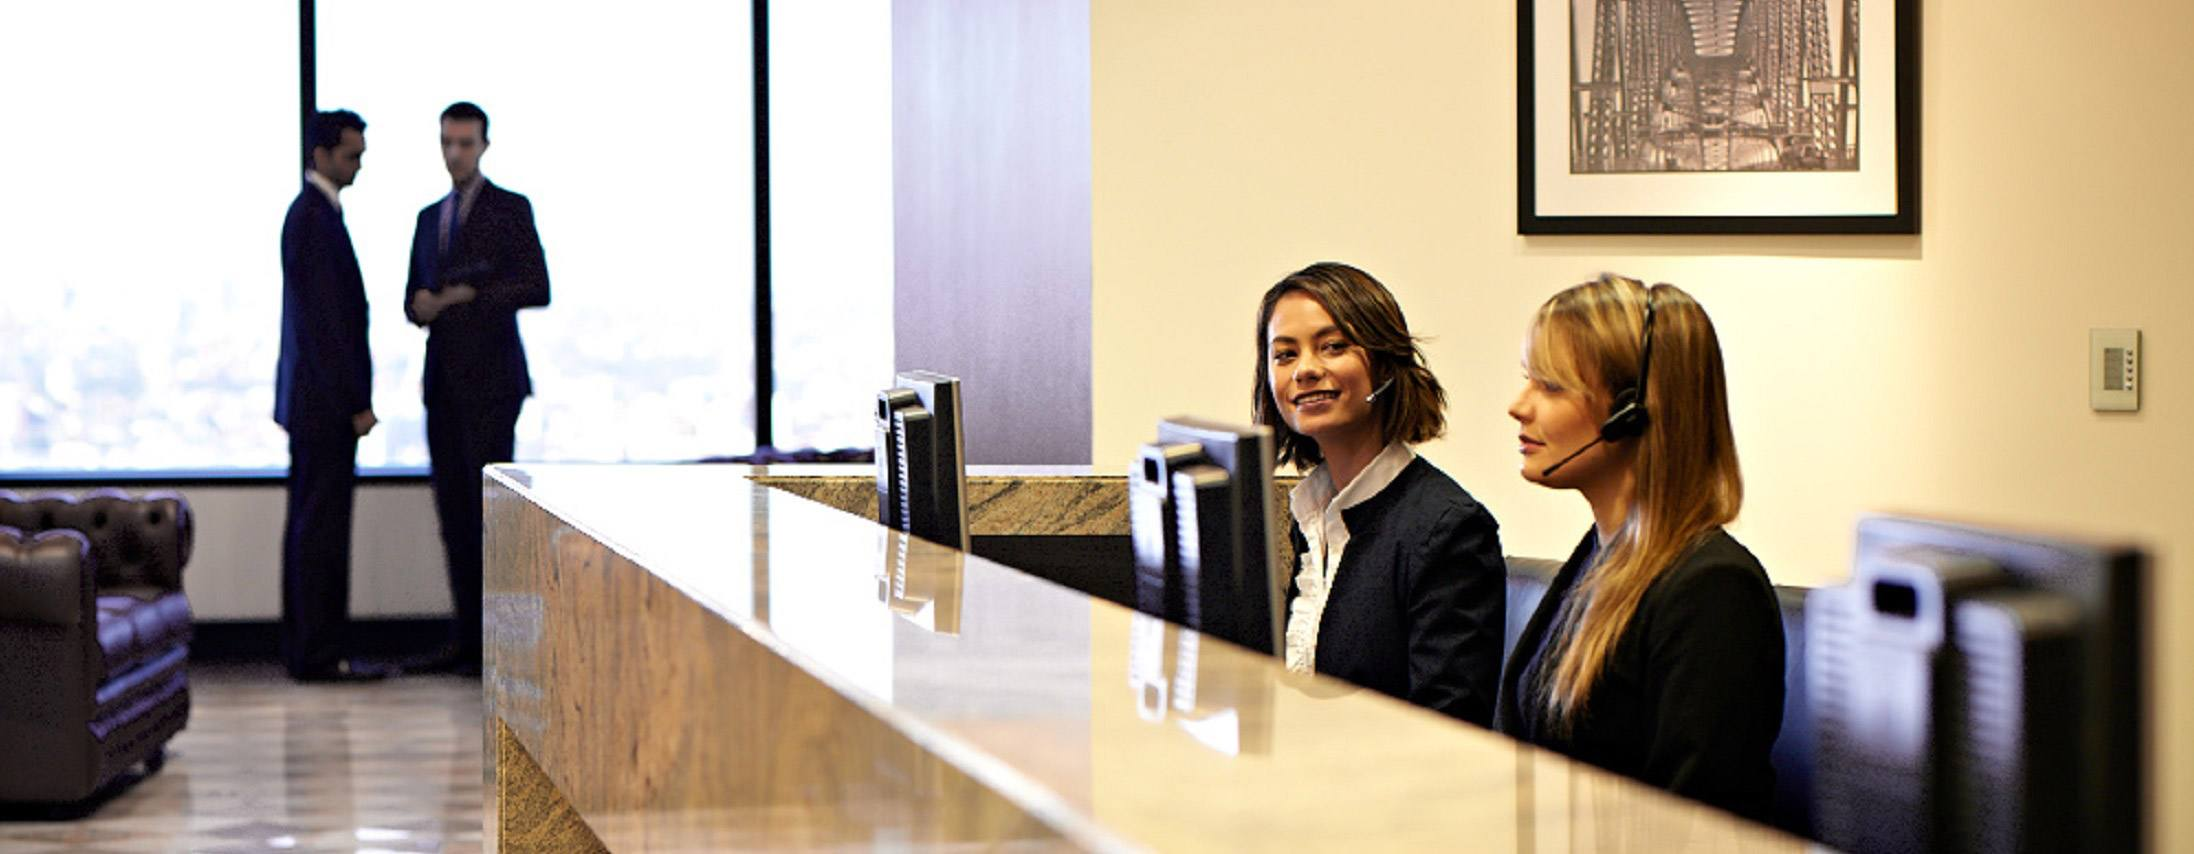 servcorp-millerst-northsydney-receptionists.jpg